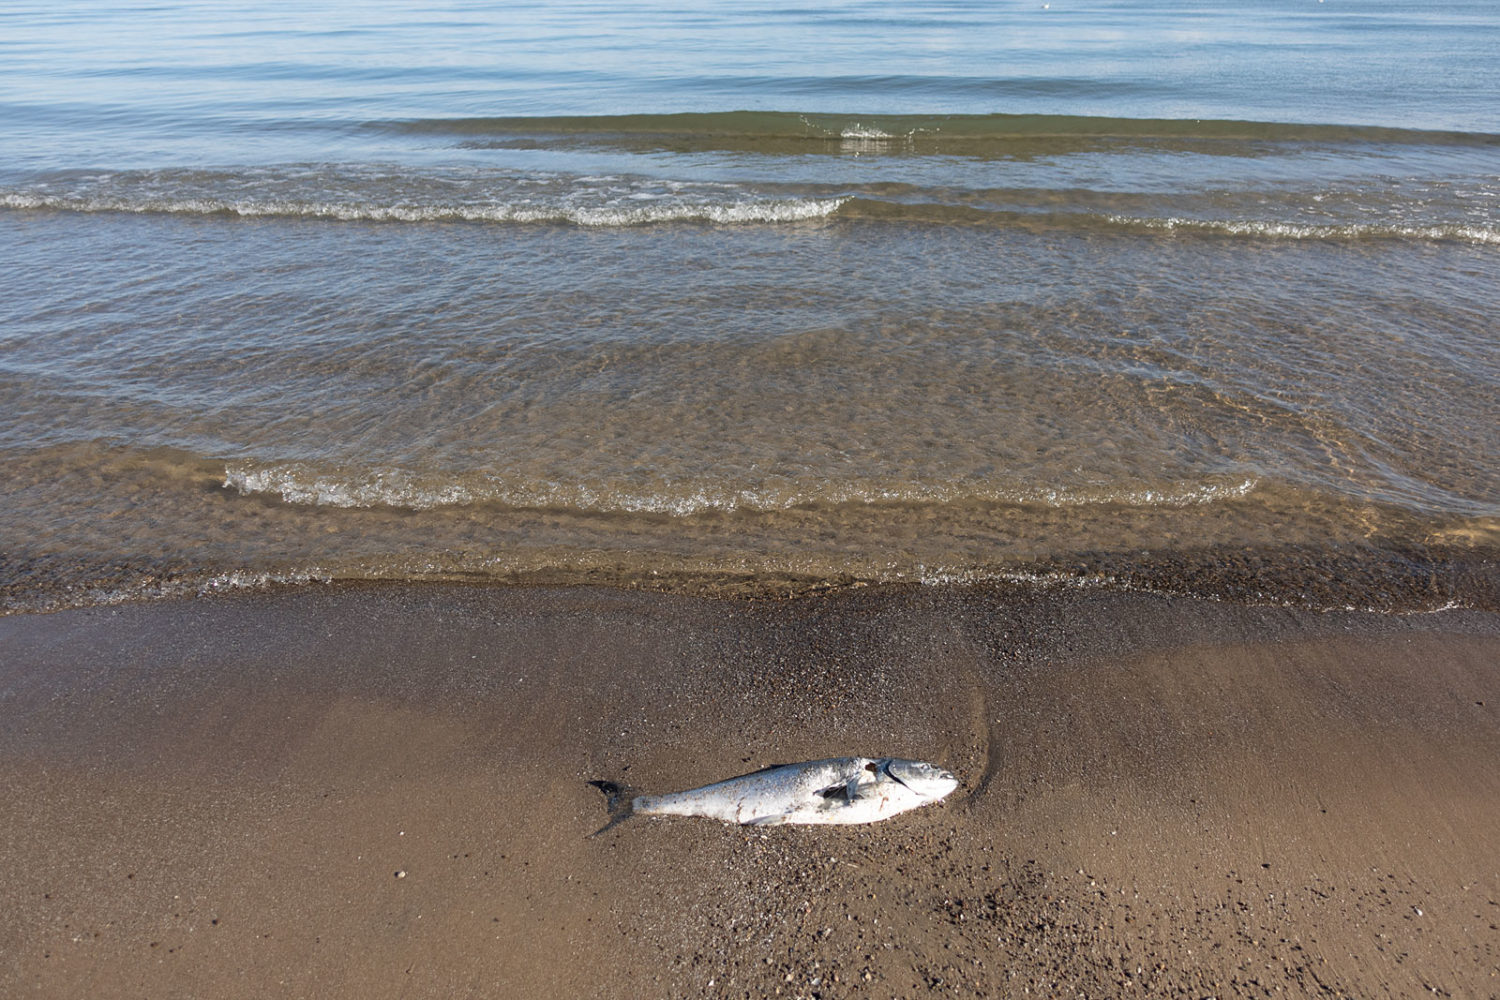 Dead shad fish along Lake Ontario